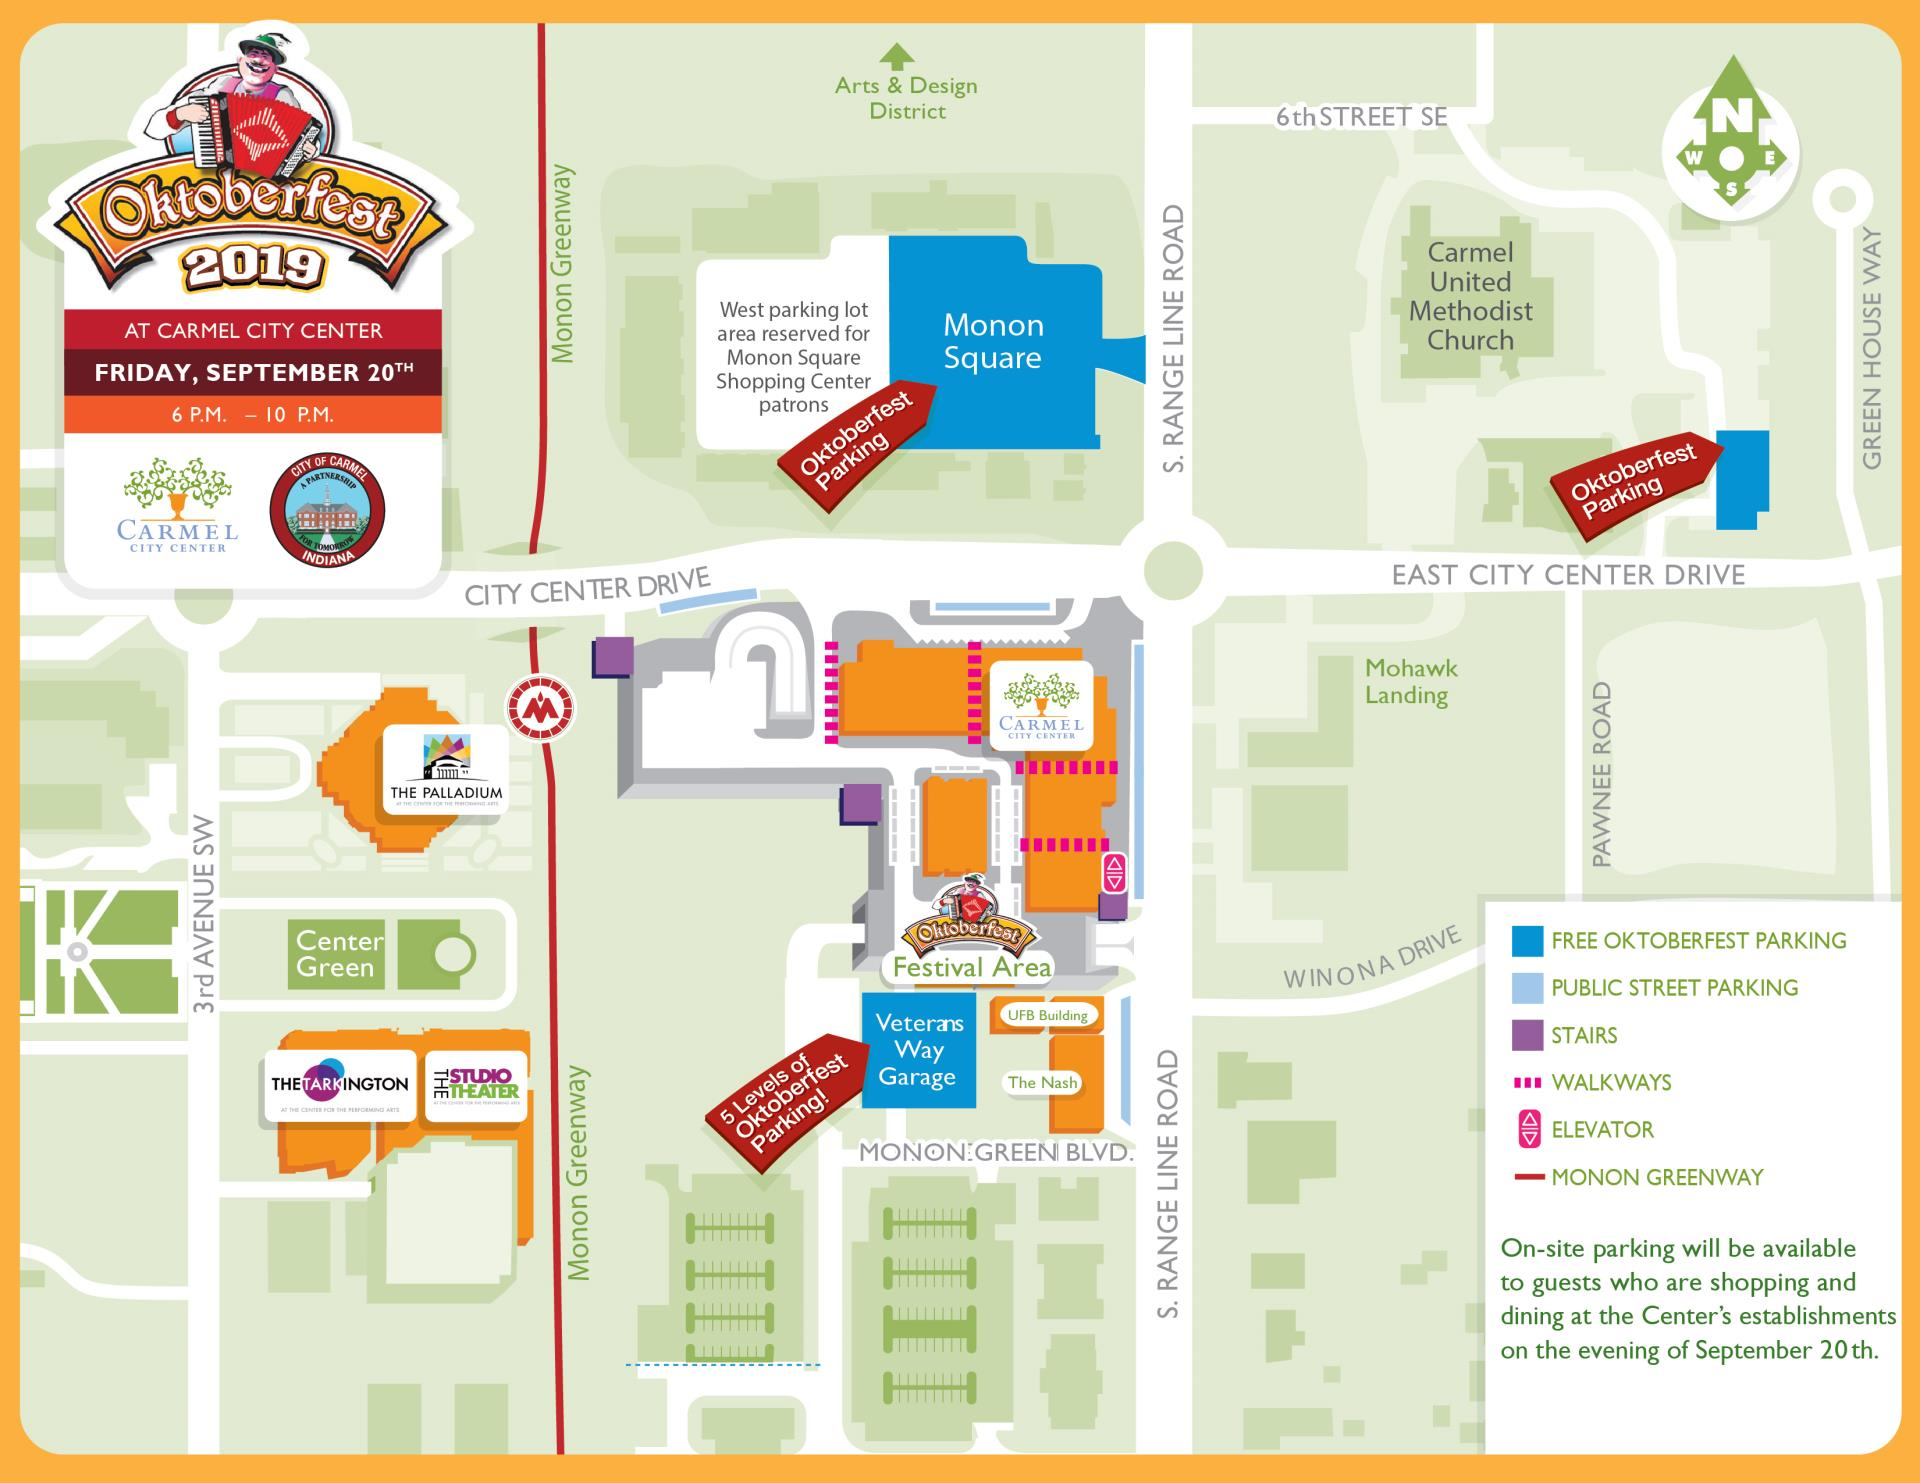 OktoberFest Parking Map Carmel, Indiana